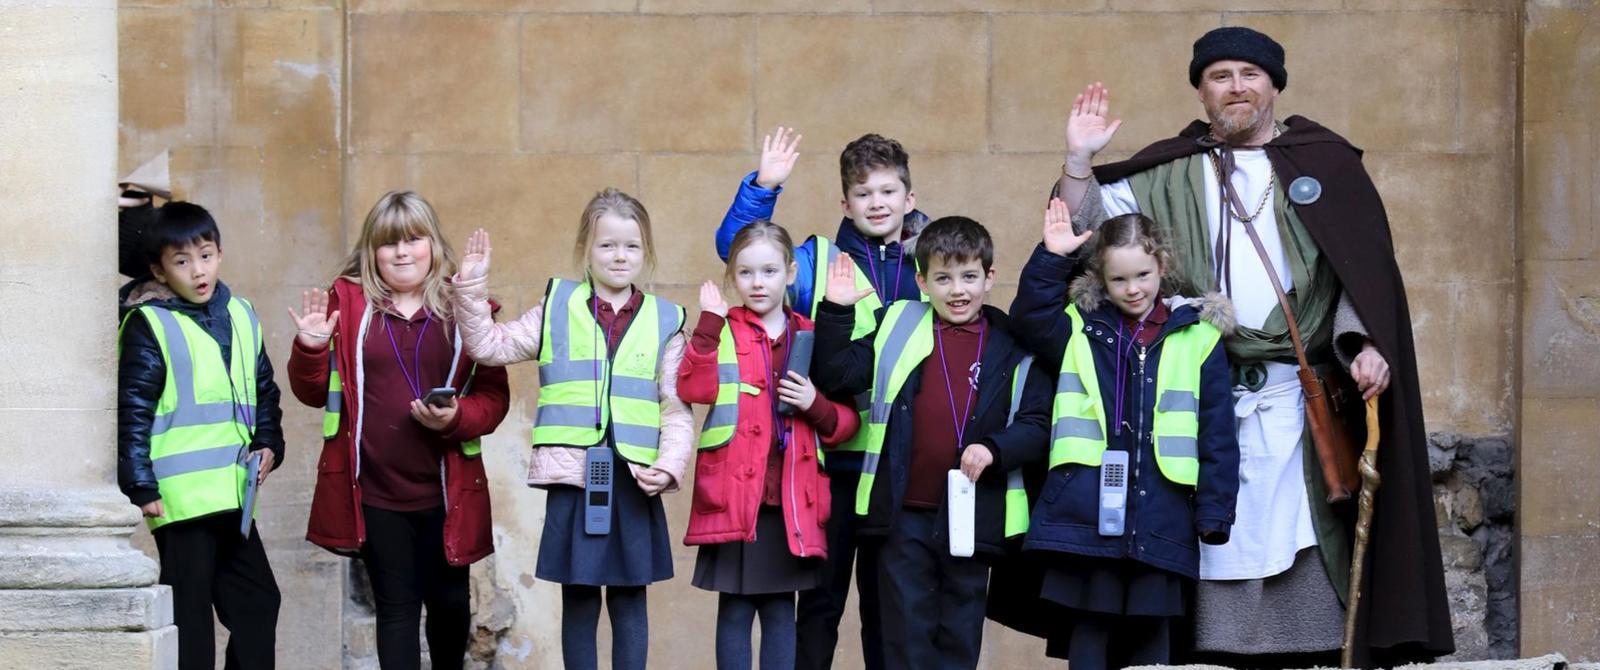 Image: School group at the Roman Baths